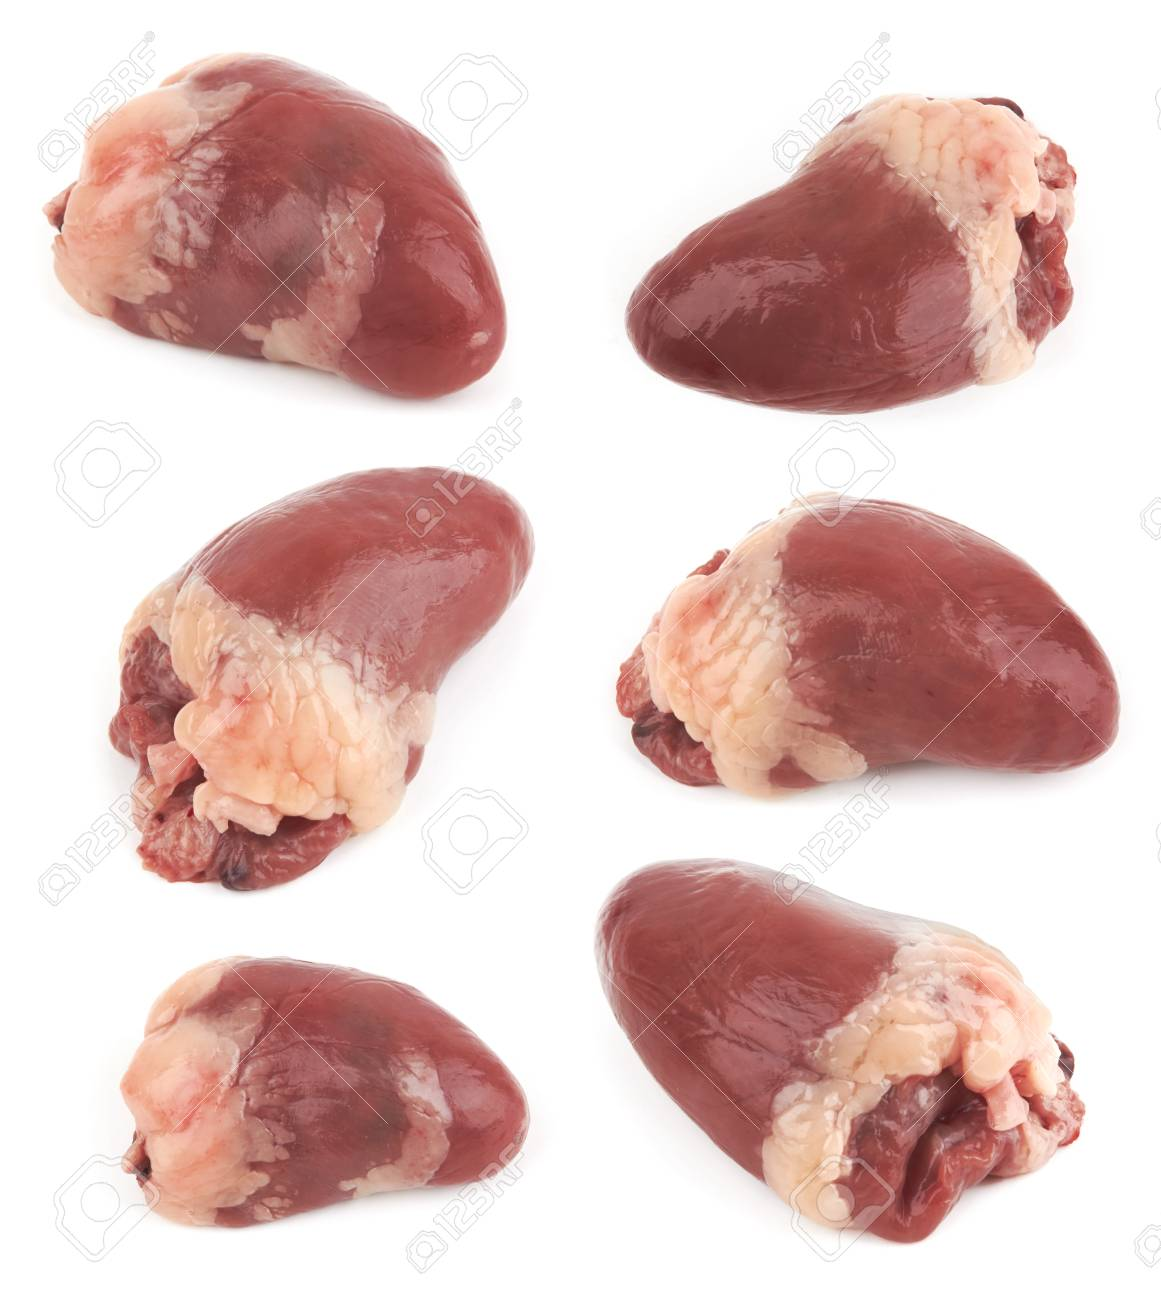 Raw Chicken Heart Isolated On White Background Stock Photo Picture And Royalty Free Image Image 100868499